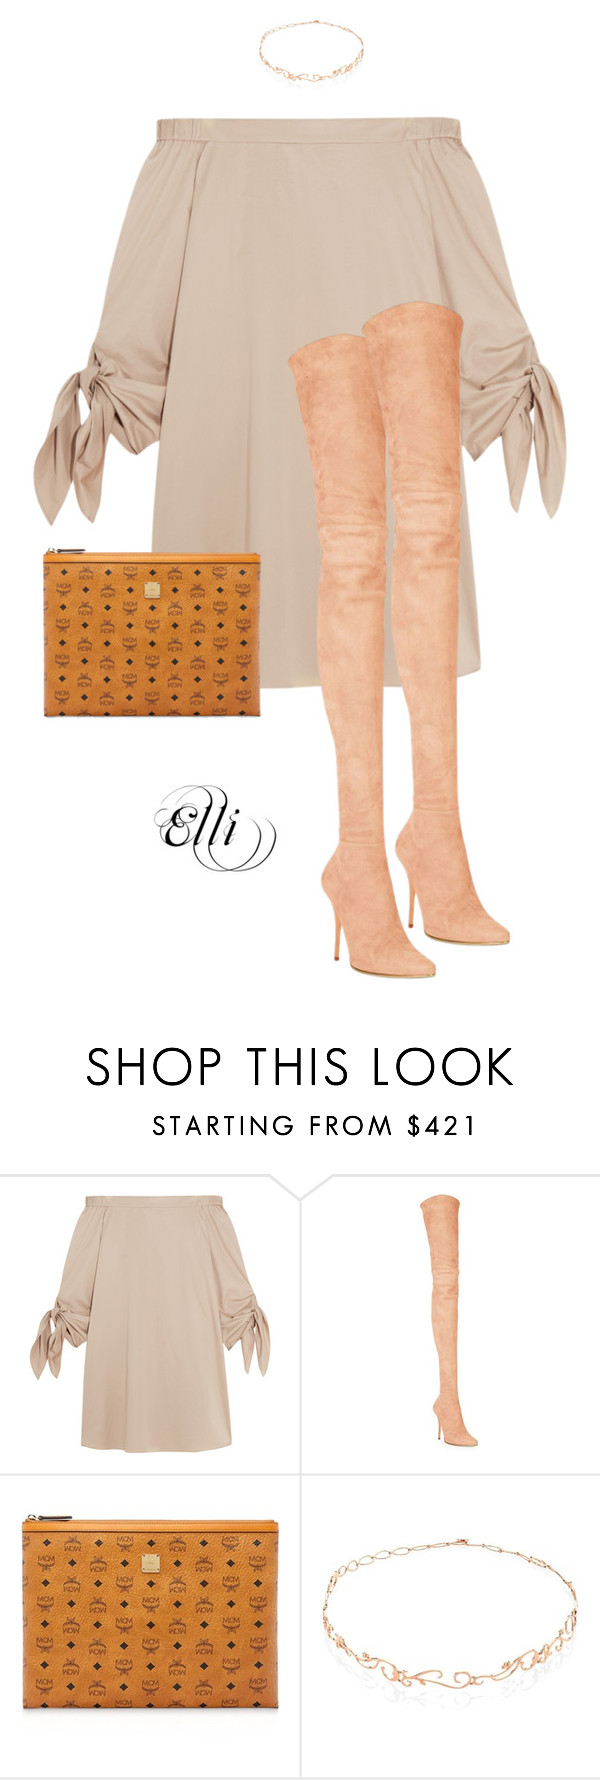 """""""Nudes"""" by elli-skouf ❤ liked on Polyvore featuring TIBI, Balmain, MCM, Diane Kordas, Nudes, summer2016 and PVHint"""